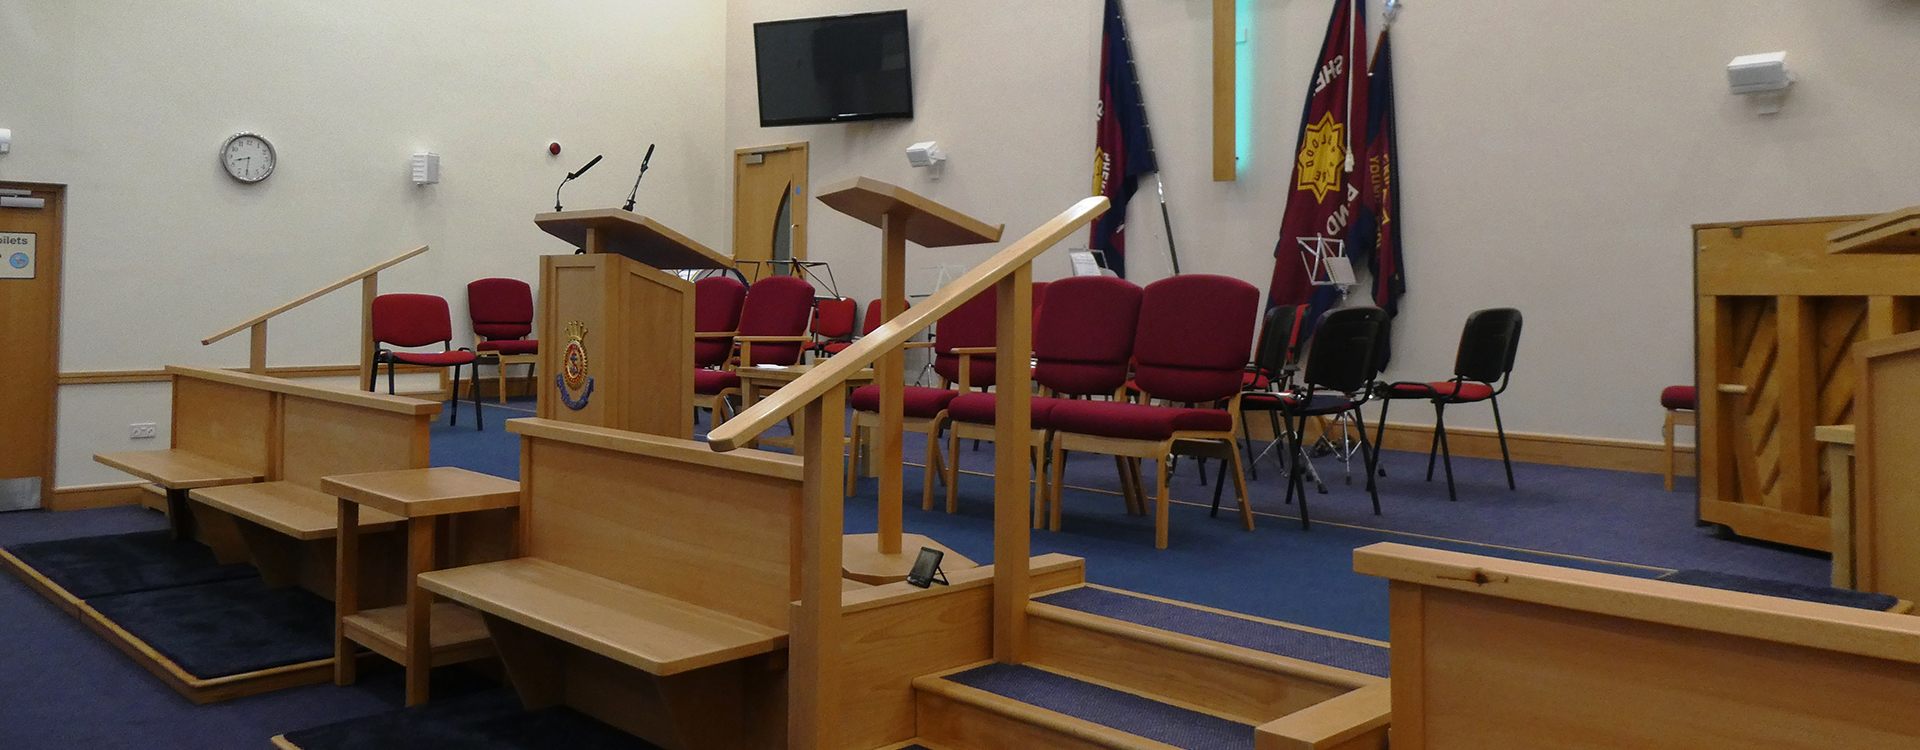 Sheringham Salvation Army Bespoke Church Furniture